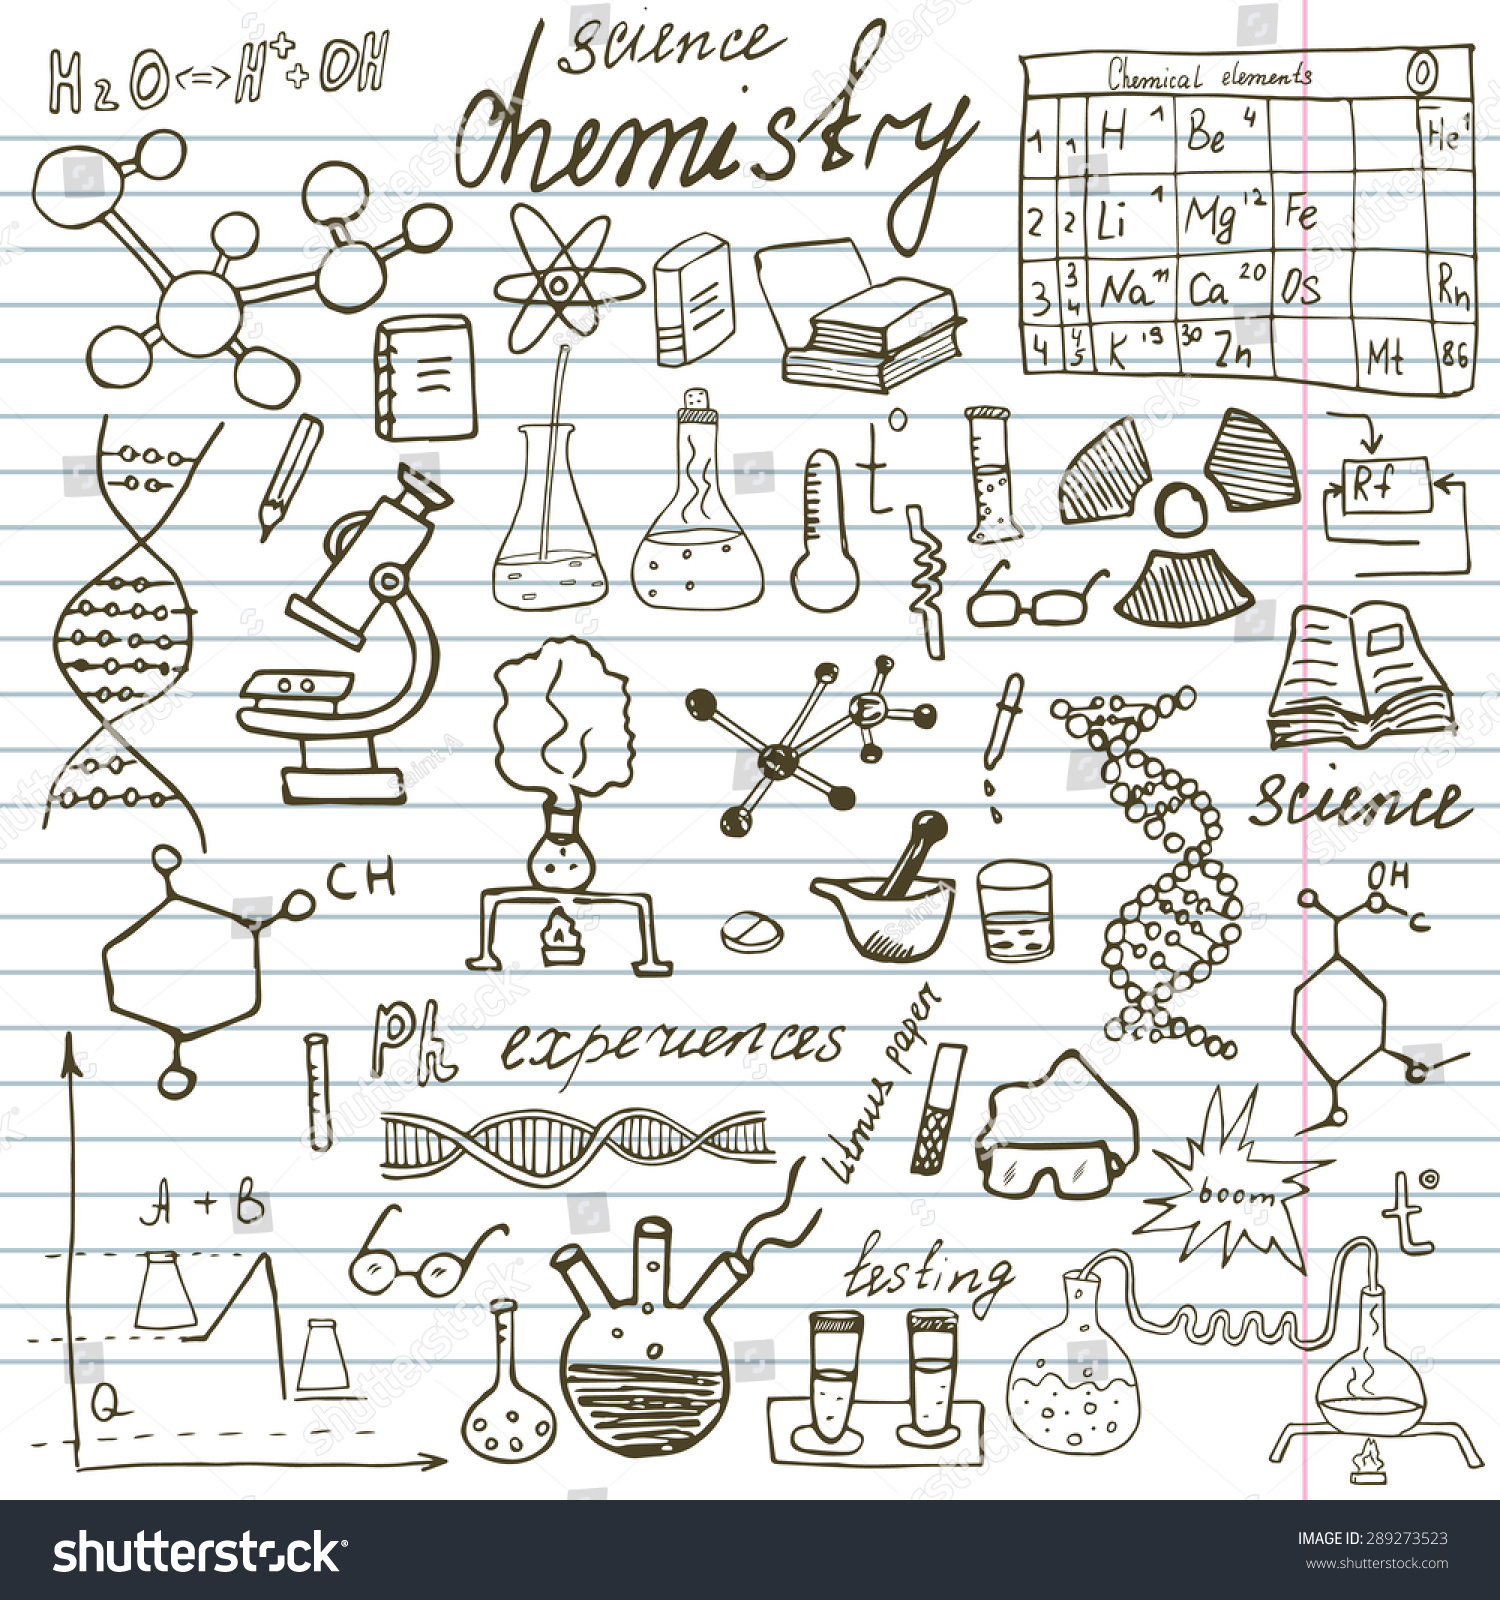 chemistry science elements doodles icons set stock vector chemistry and science elements doodles icons set hand drawn sketch microscope formulas